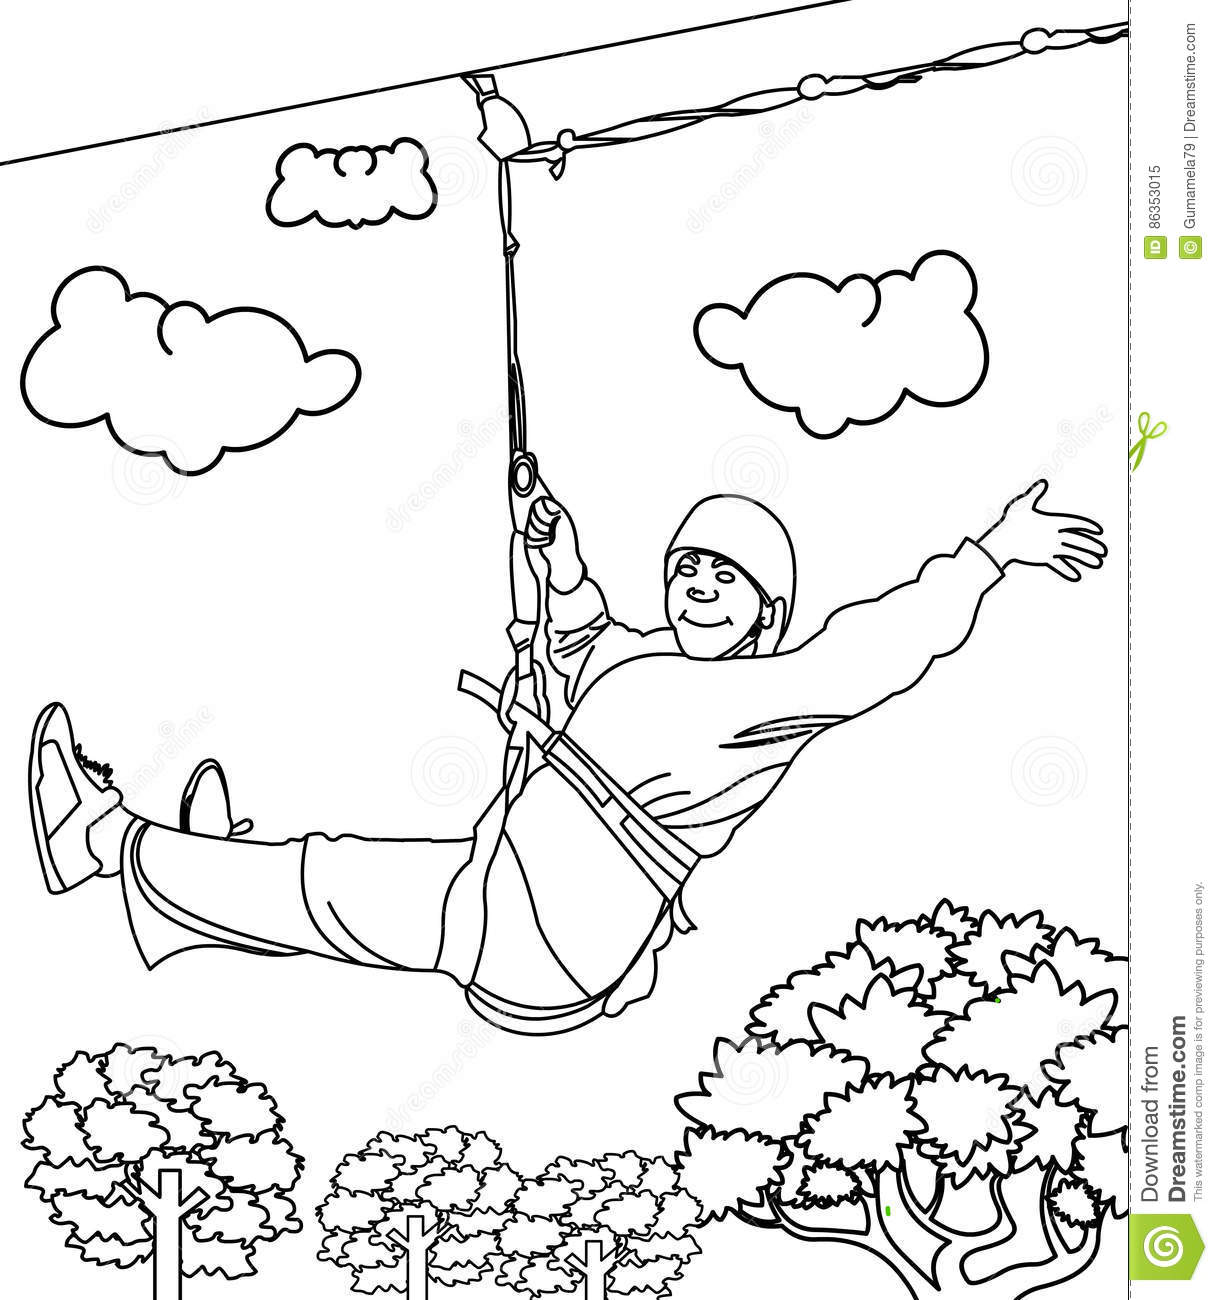 zipping coloring pages - photo#25